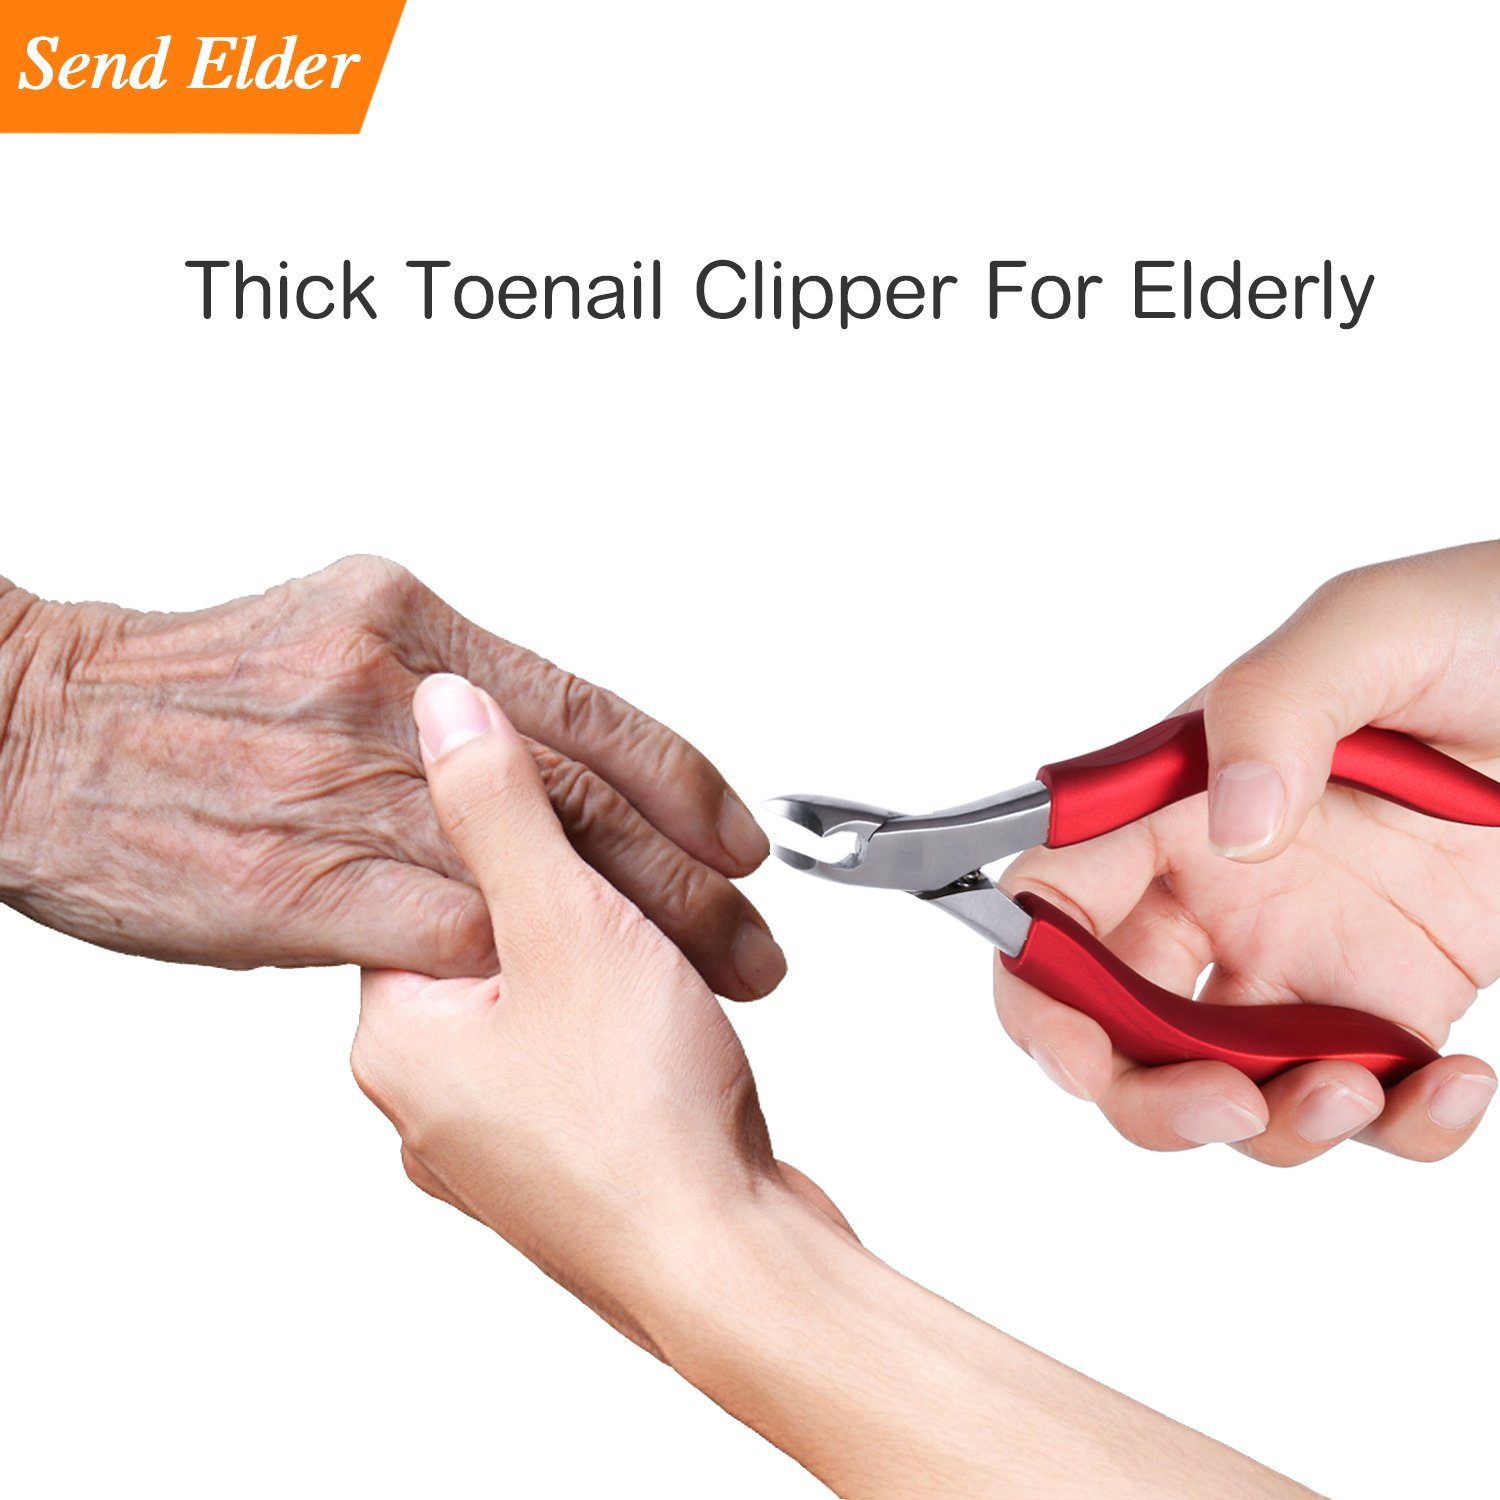 Toenailclippersforelderly, Used For Thick Toenails 、Fungi Toenails 、Ingrown Toenails. Long Handle, Leather Packaging, Safe Storage by RONAVO